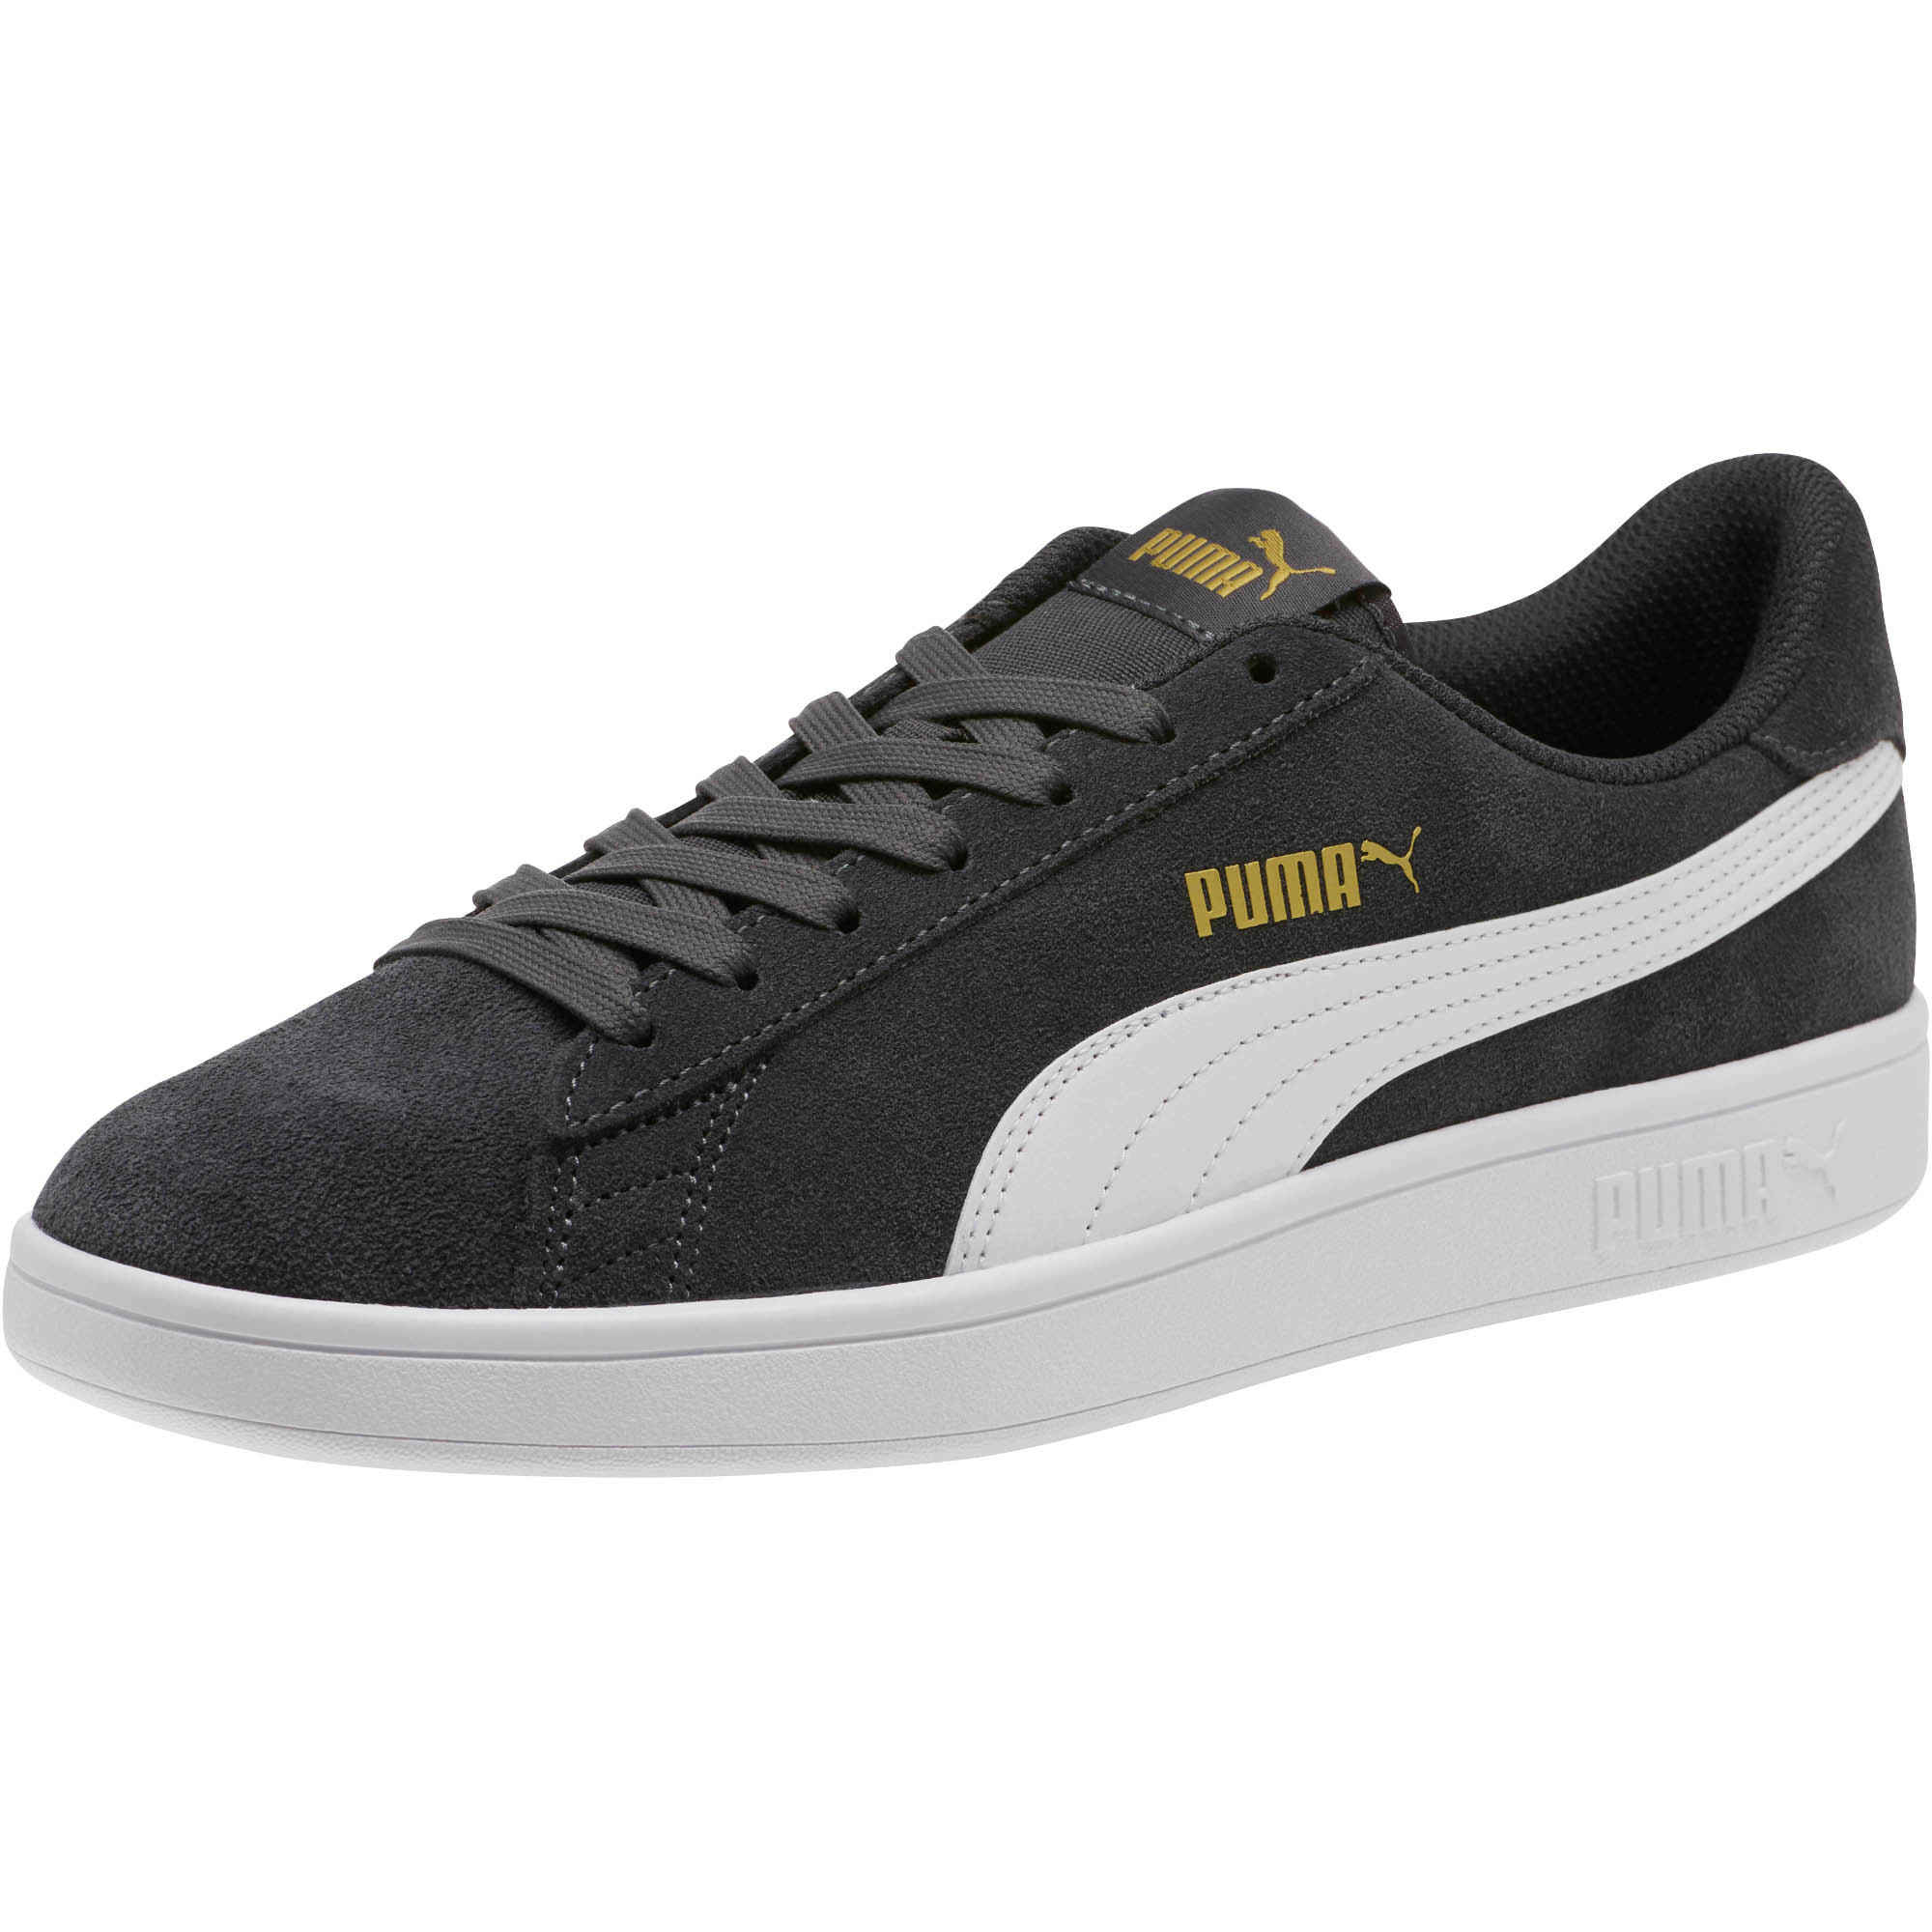 PUMA-PUMA-Smash-v2-Men-039-s-Sneakers-Men-Shoe-Basics thumbnail 35